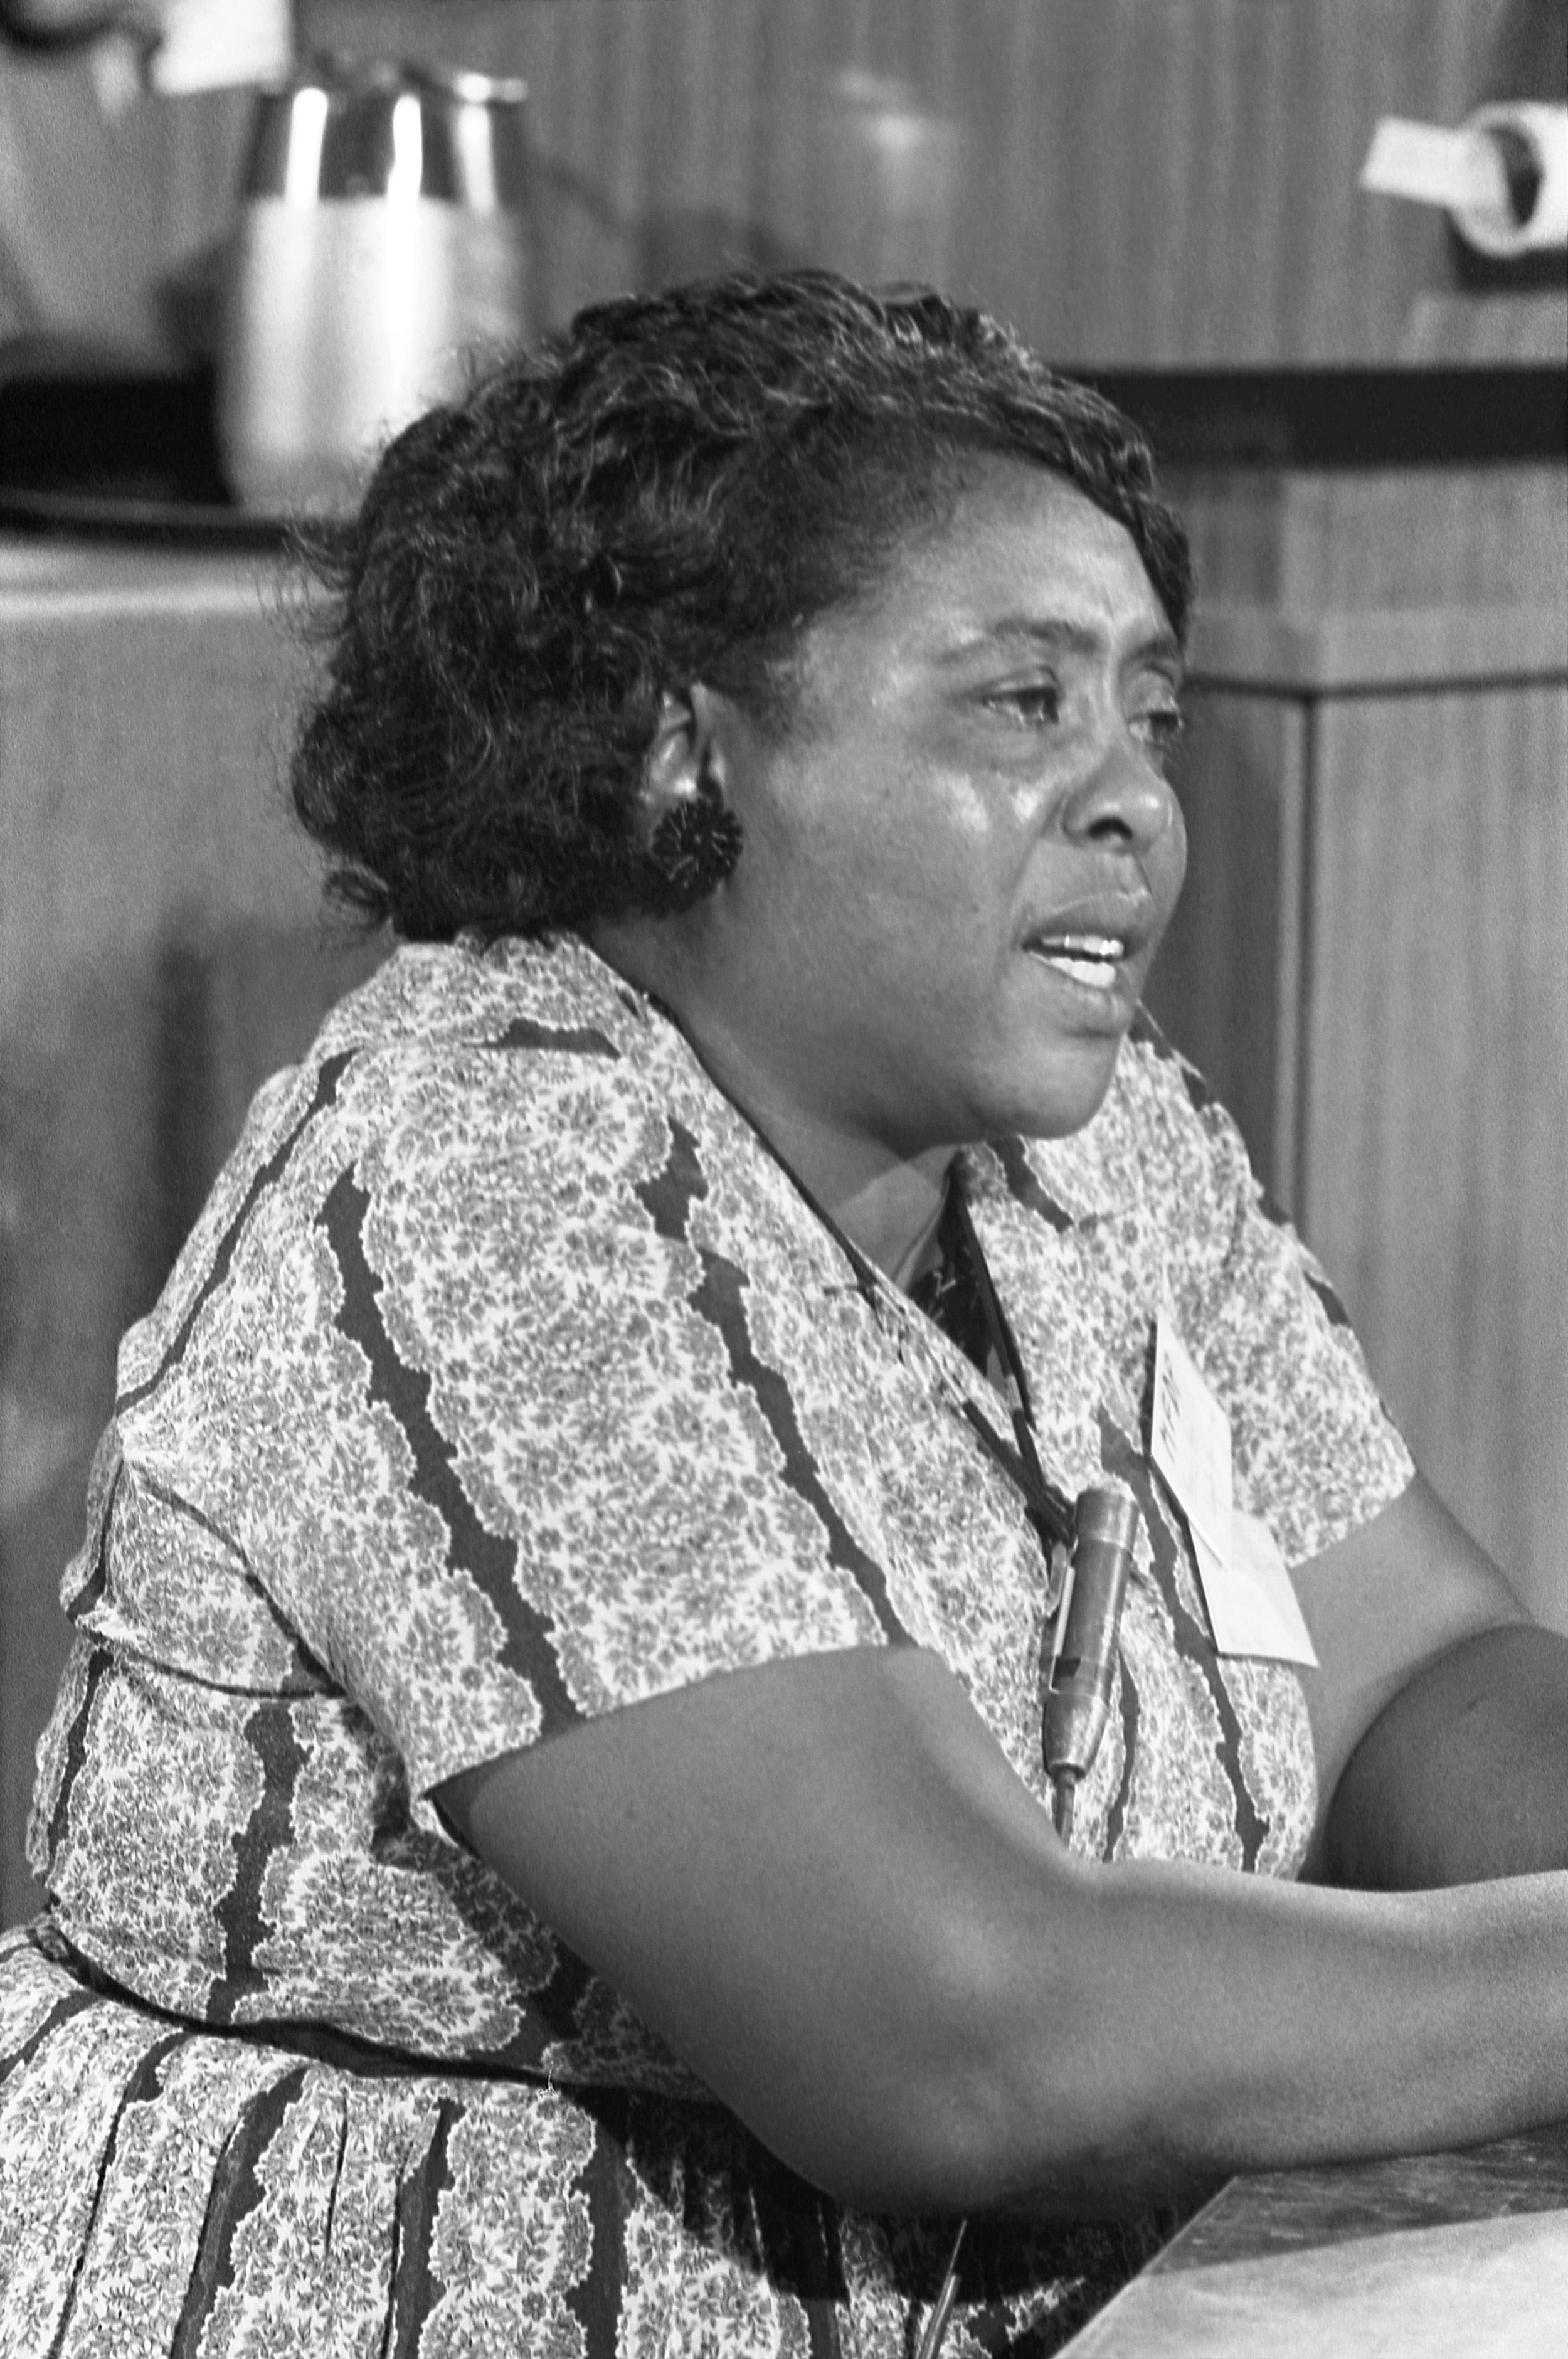 "Photo credit:  Warren Leffler, U.S. New & World Report Magazine  On July 4, 2019, Time Magazine published an article called, "" 15 unsung moments from American history.""  Mississippi Freedom Democratic Party delegate Fannie Lou Hamer speaks out for the meeting of her delegates at a credential meeting prior to the formal meeting of the Democratic National Convention.  On Aug. 22, 1964,  Fannie Lou Hamer  delivered  one of the most powerful speeches in U.S. history . The fiery civil rights activist traveled all the way from Mississippi to Atlantic City, N.J., to challenge the all-white Mississippi delegation to the Democratic National Convention (DNC). Before a televised audience of millions of viewers, this former sharecropper, who had registered to vote for the first time in her 40s, demanded black political rights and boldly denounced voter suppression and state-sanctioned violence. Despite President Lyndon B. Johnson's  attempt  to silence Hamer,  her testimony sent shock waves throughout the nation, and set in motion a series of events that ultimately led to the passage of the 1965 Voting Rights Act.  Mainstream narratives of the Civil Rights Movement tend to focus on high-profile events — and often through the perspectives of men. Yet Hamer's story, and her iconic speech before the DNC in 1964, represent one of the most significant developments during this period."